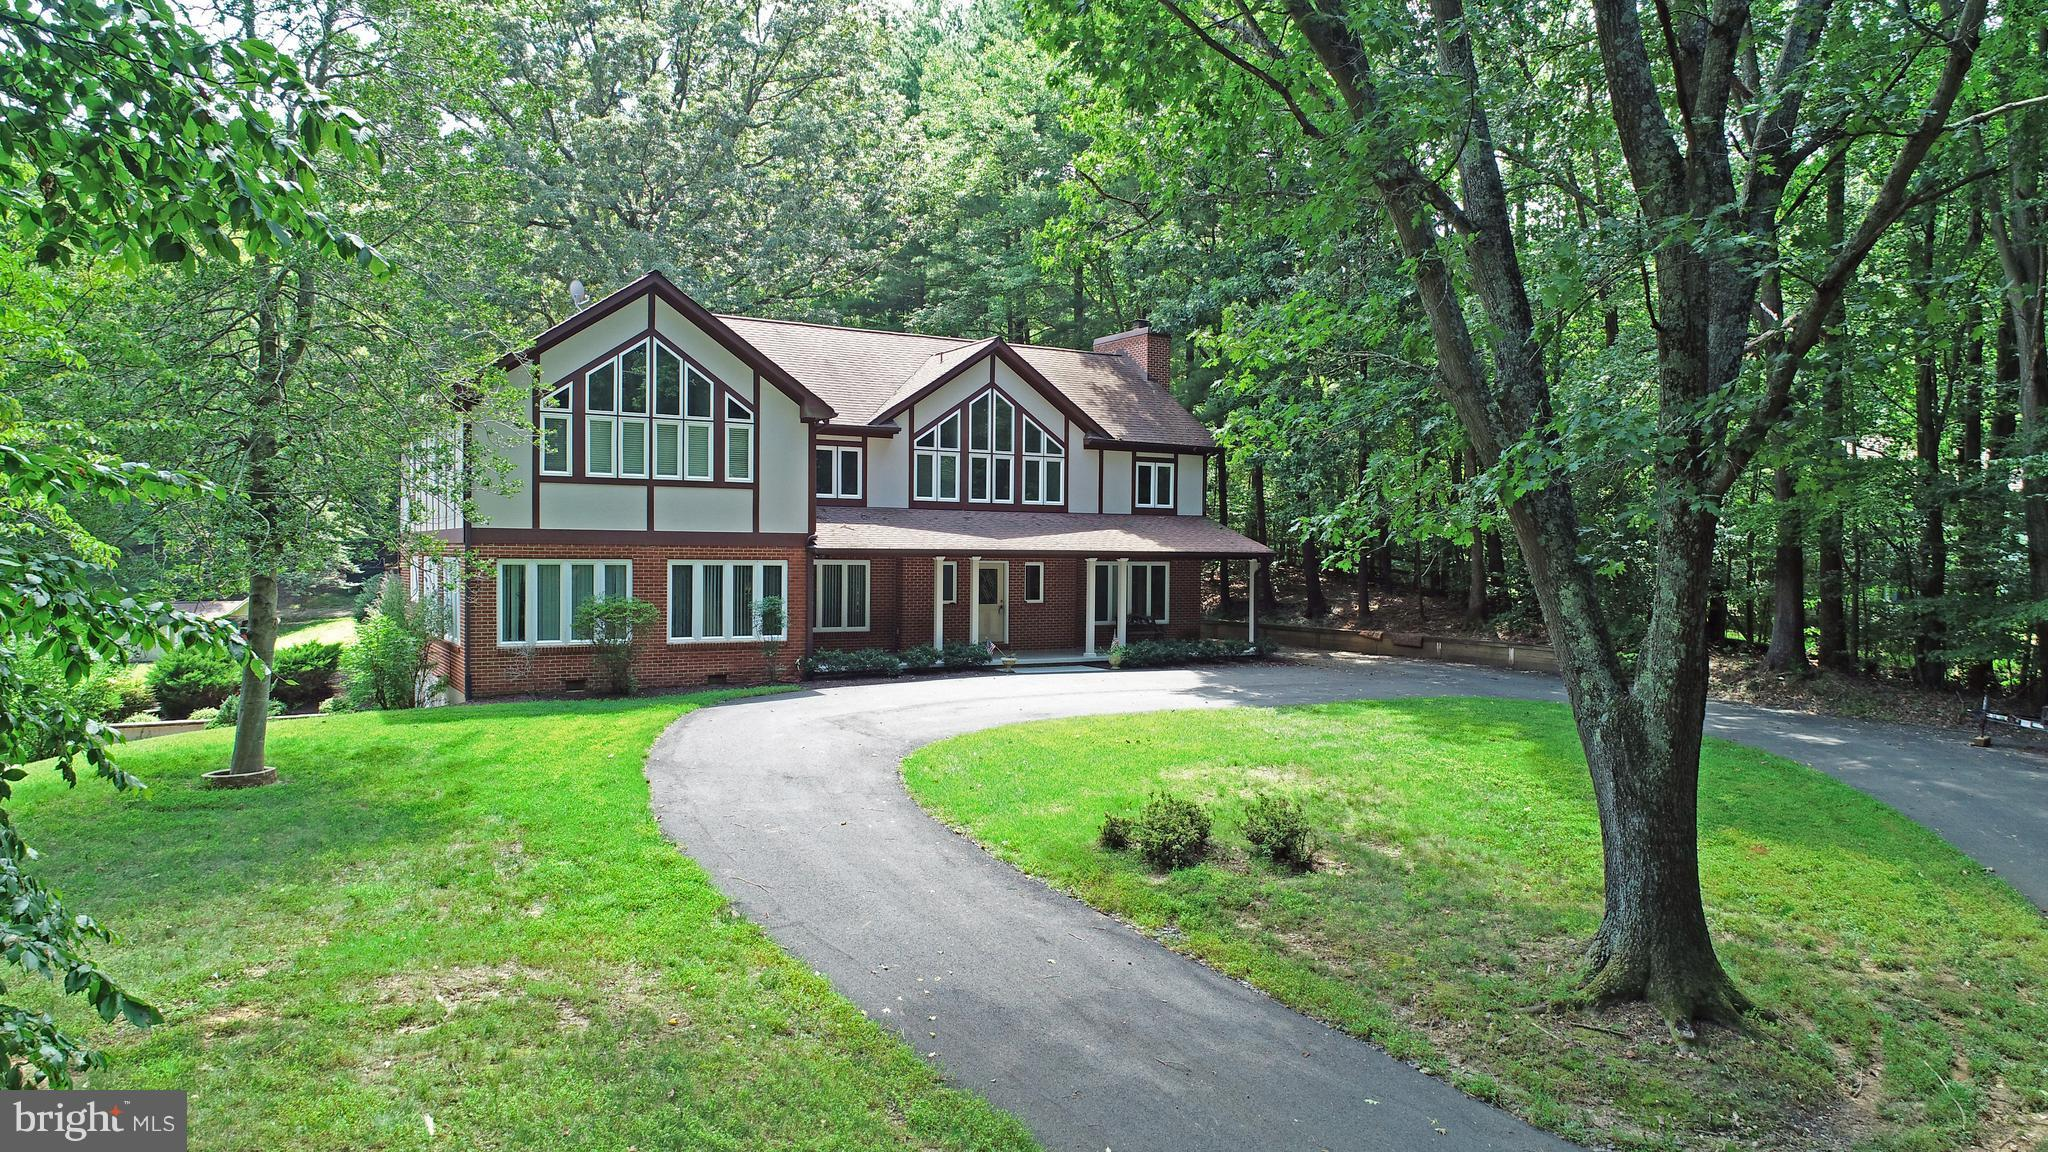 Spectacular Home in Country-Like Setting! Major remodel between '08 & '12.  Virtually entire home has been replaced, with meticulous detail.  Custom cherry cabs in kitchen, heated marble floor foyer, incredible master bedroom with gas FP. In-law suite in basement,1000 gal propane tank fuels emergency generator, fireplace and cook top. Large open space, plenty of parking and storage. Come and See!